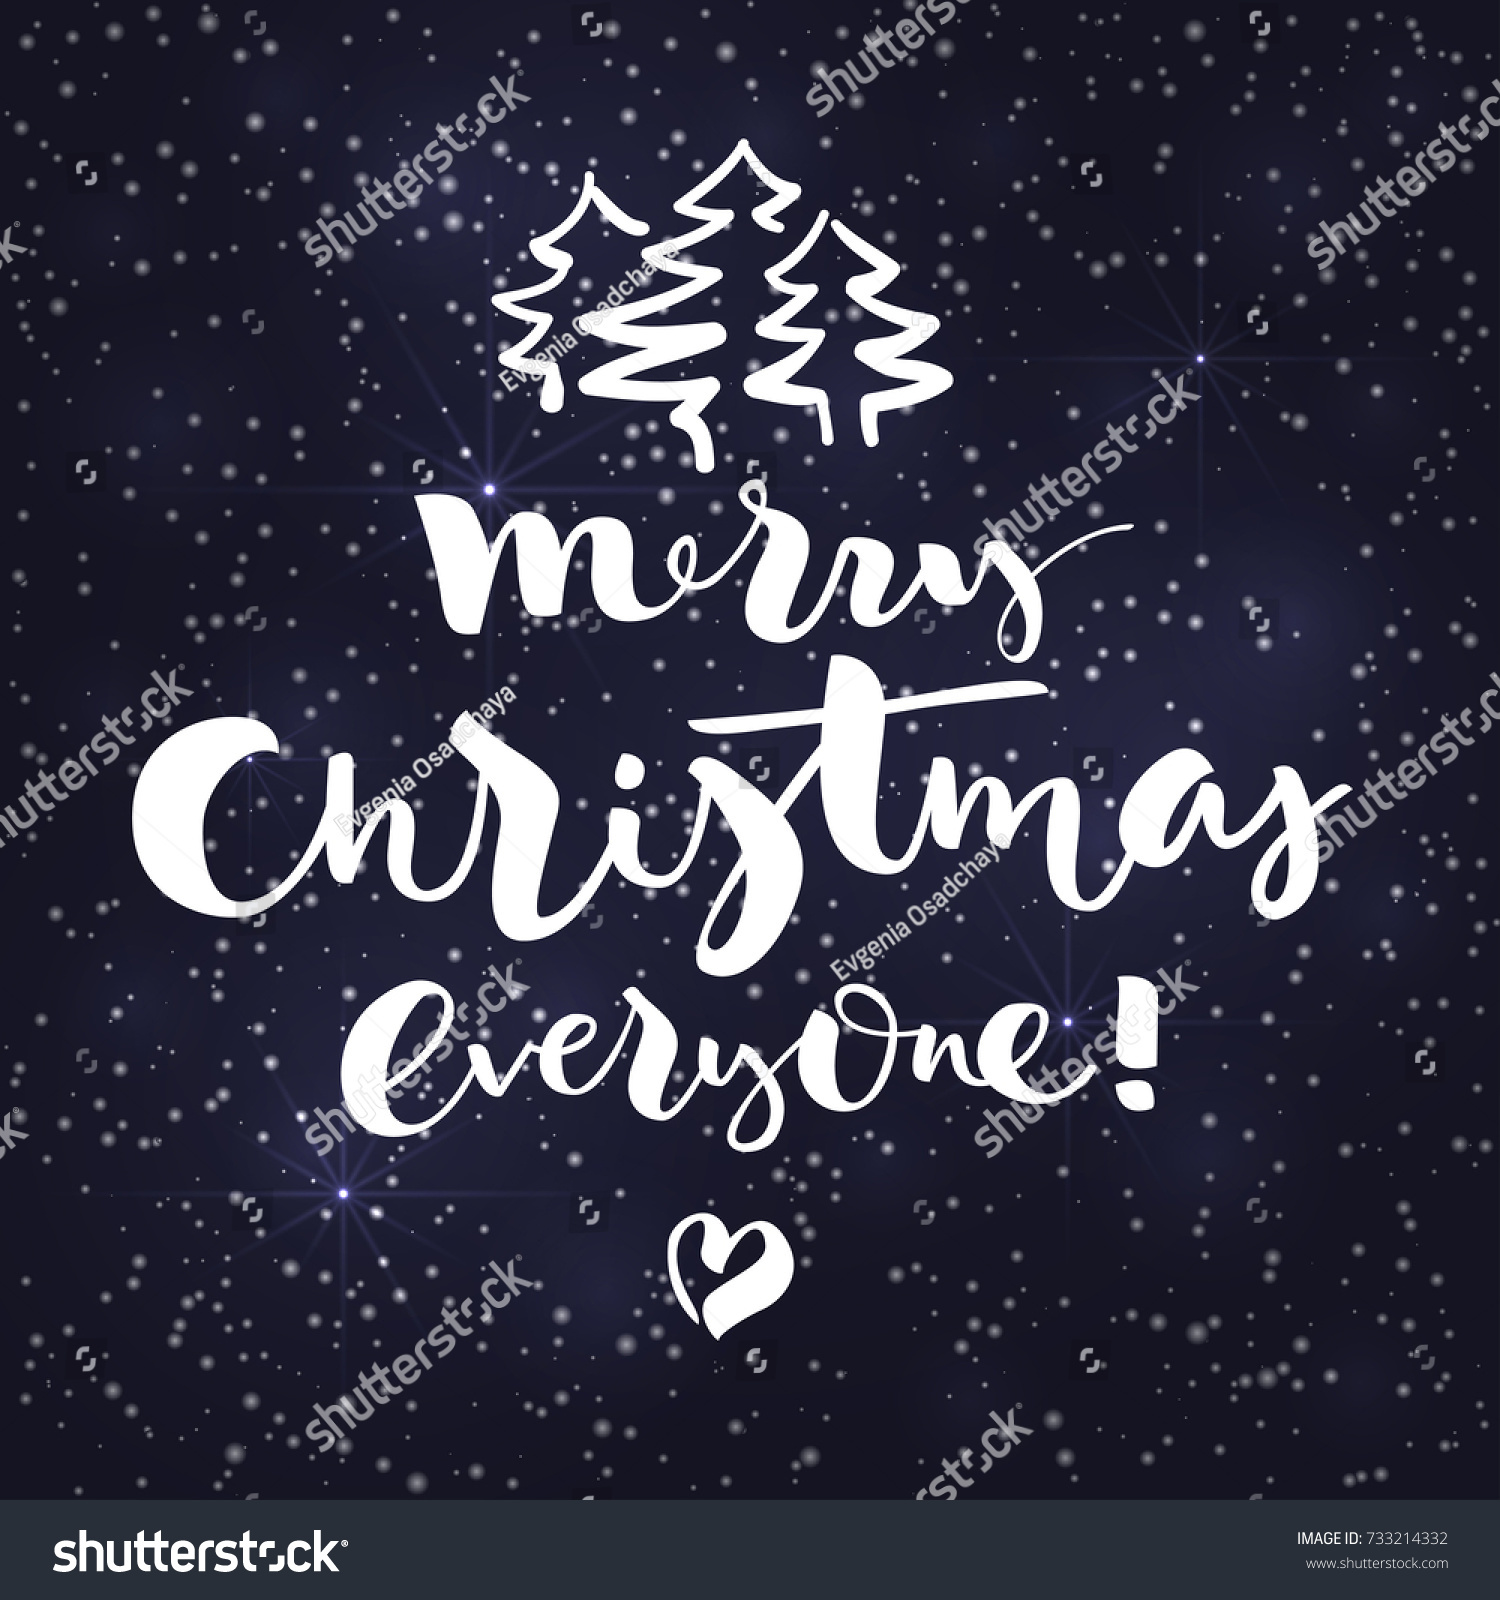 Lettering Merry Christmas Everyone On Dark Stock Vector (Royalty ...